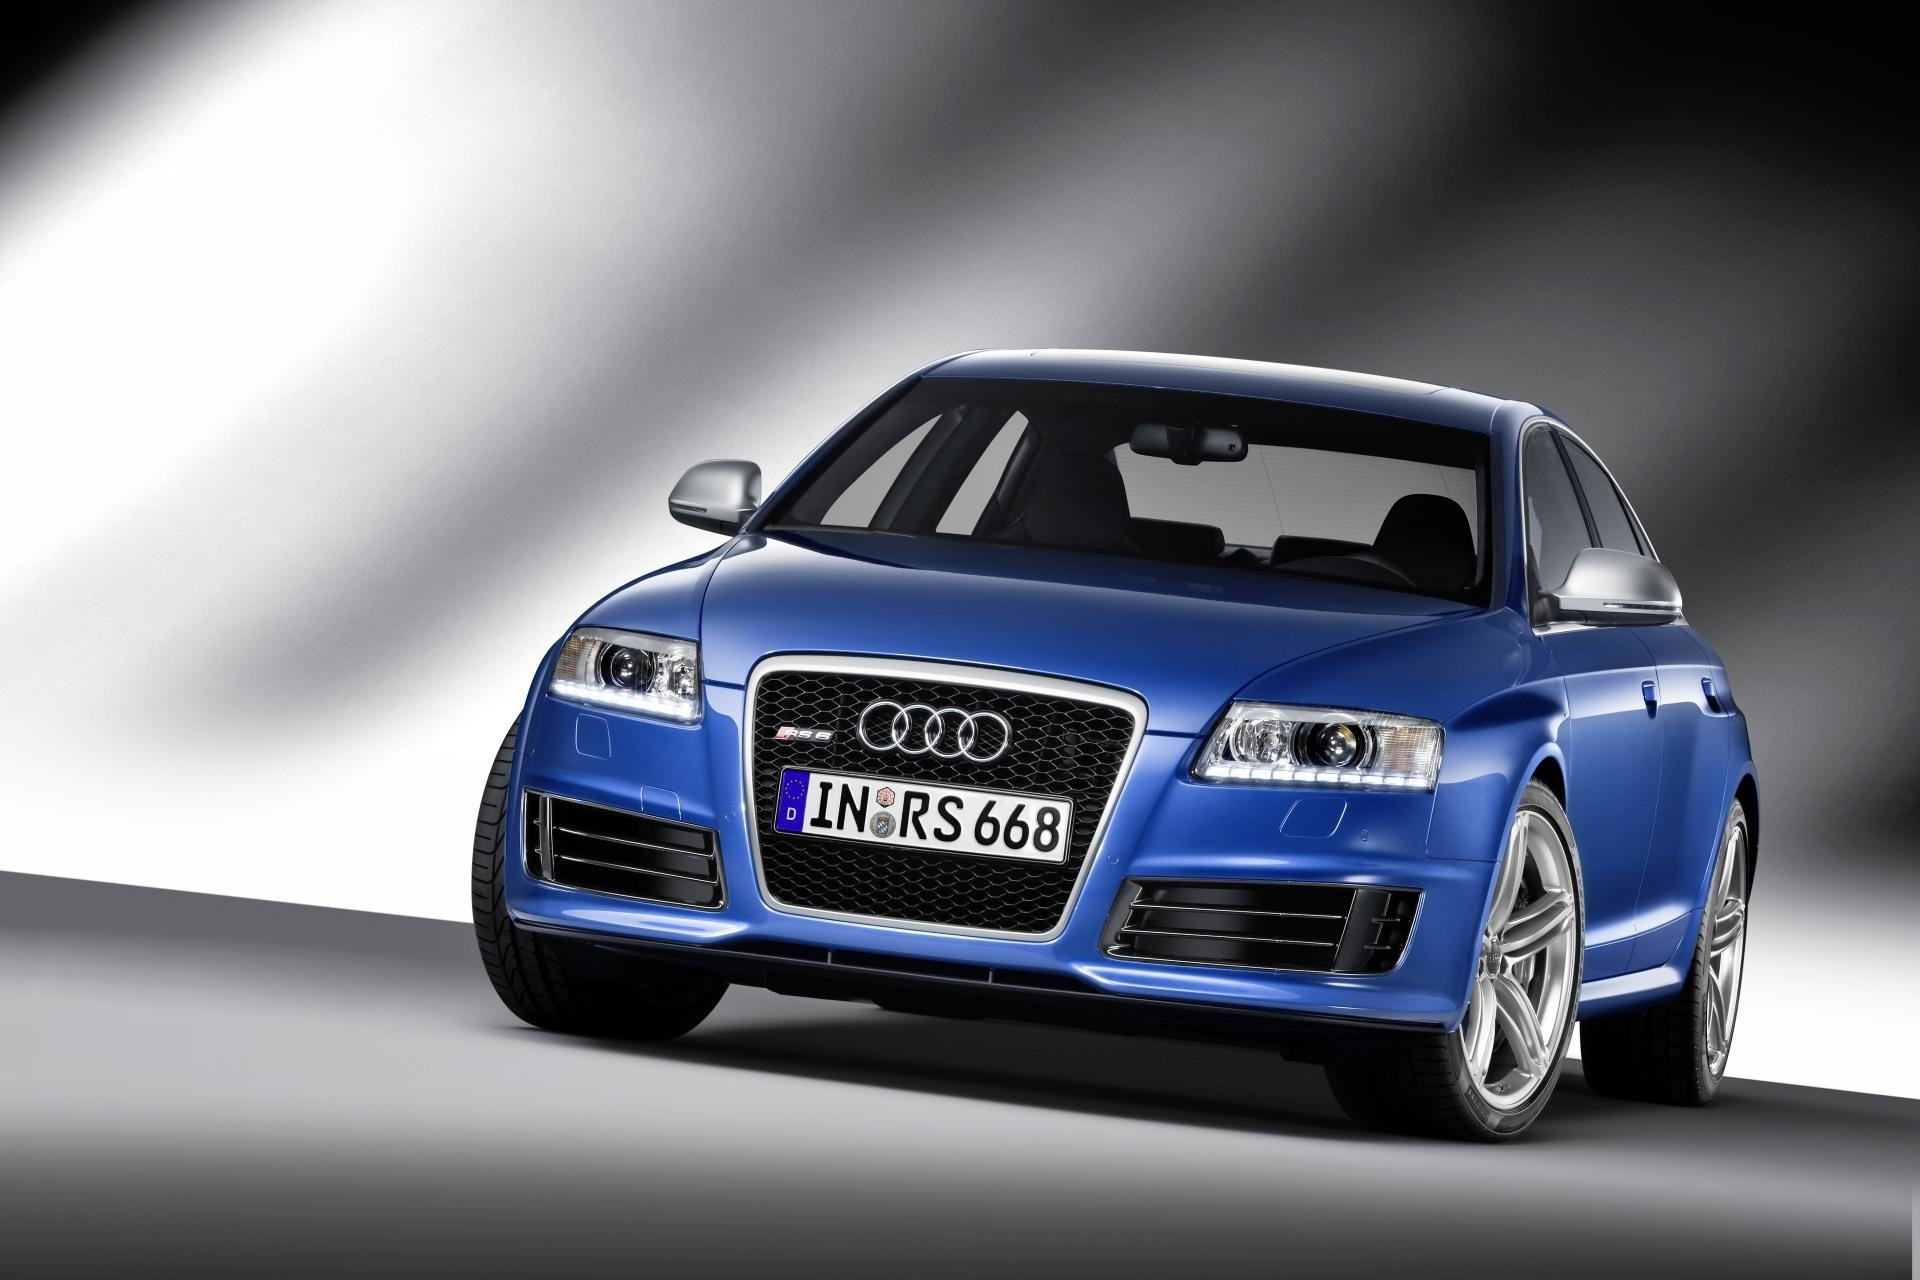 Latest Audi A6 Wallpapers Hd Wallpapers Pulse Free Download